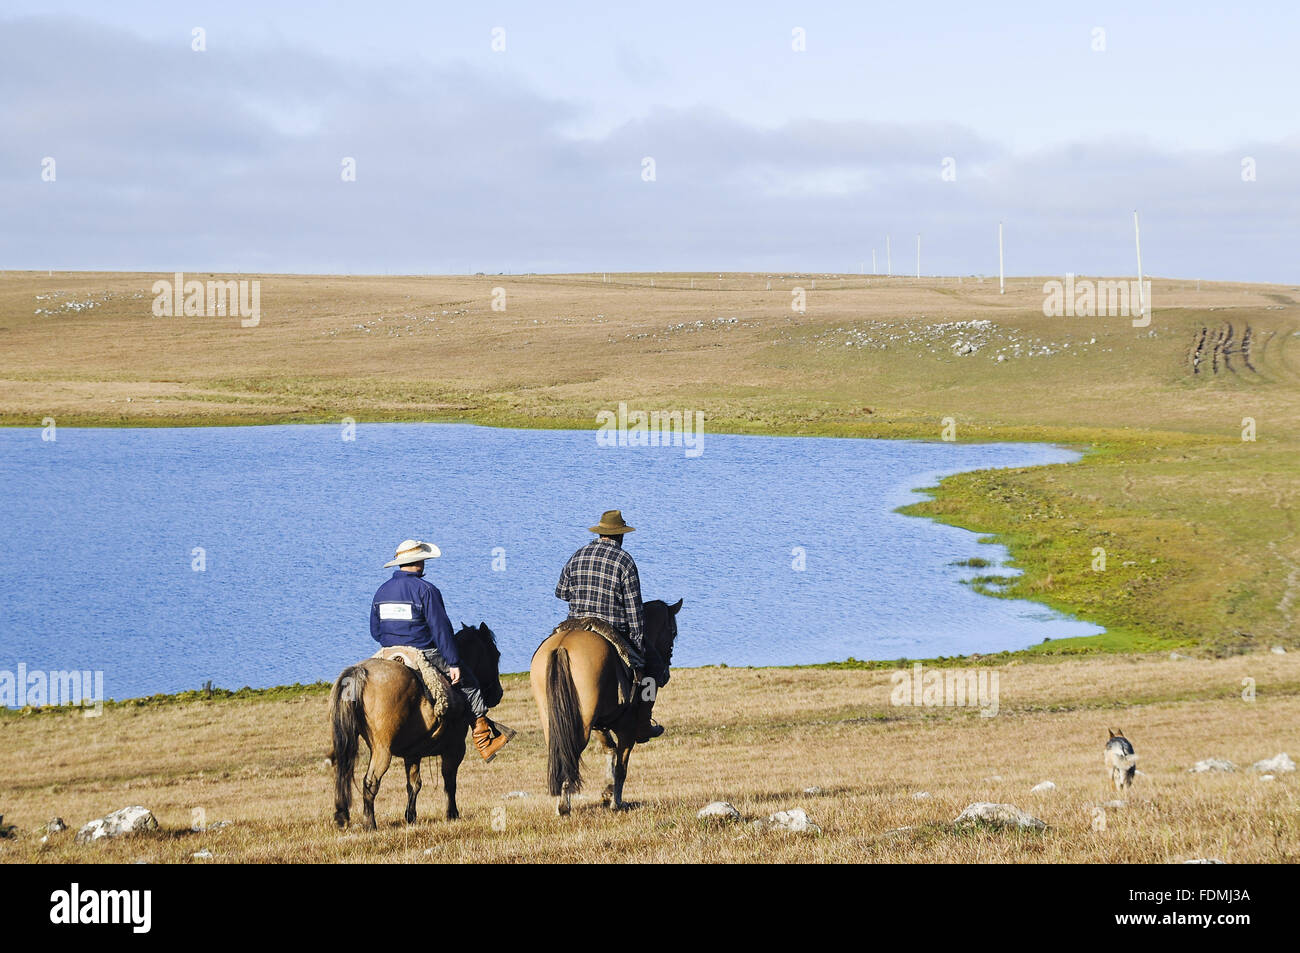 Gauchos riding in the National Park of Sierra Aparados - Stock Image